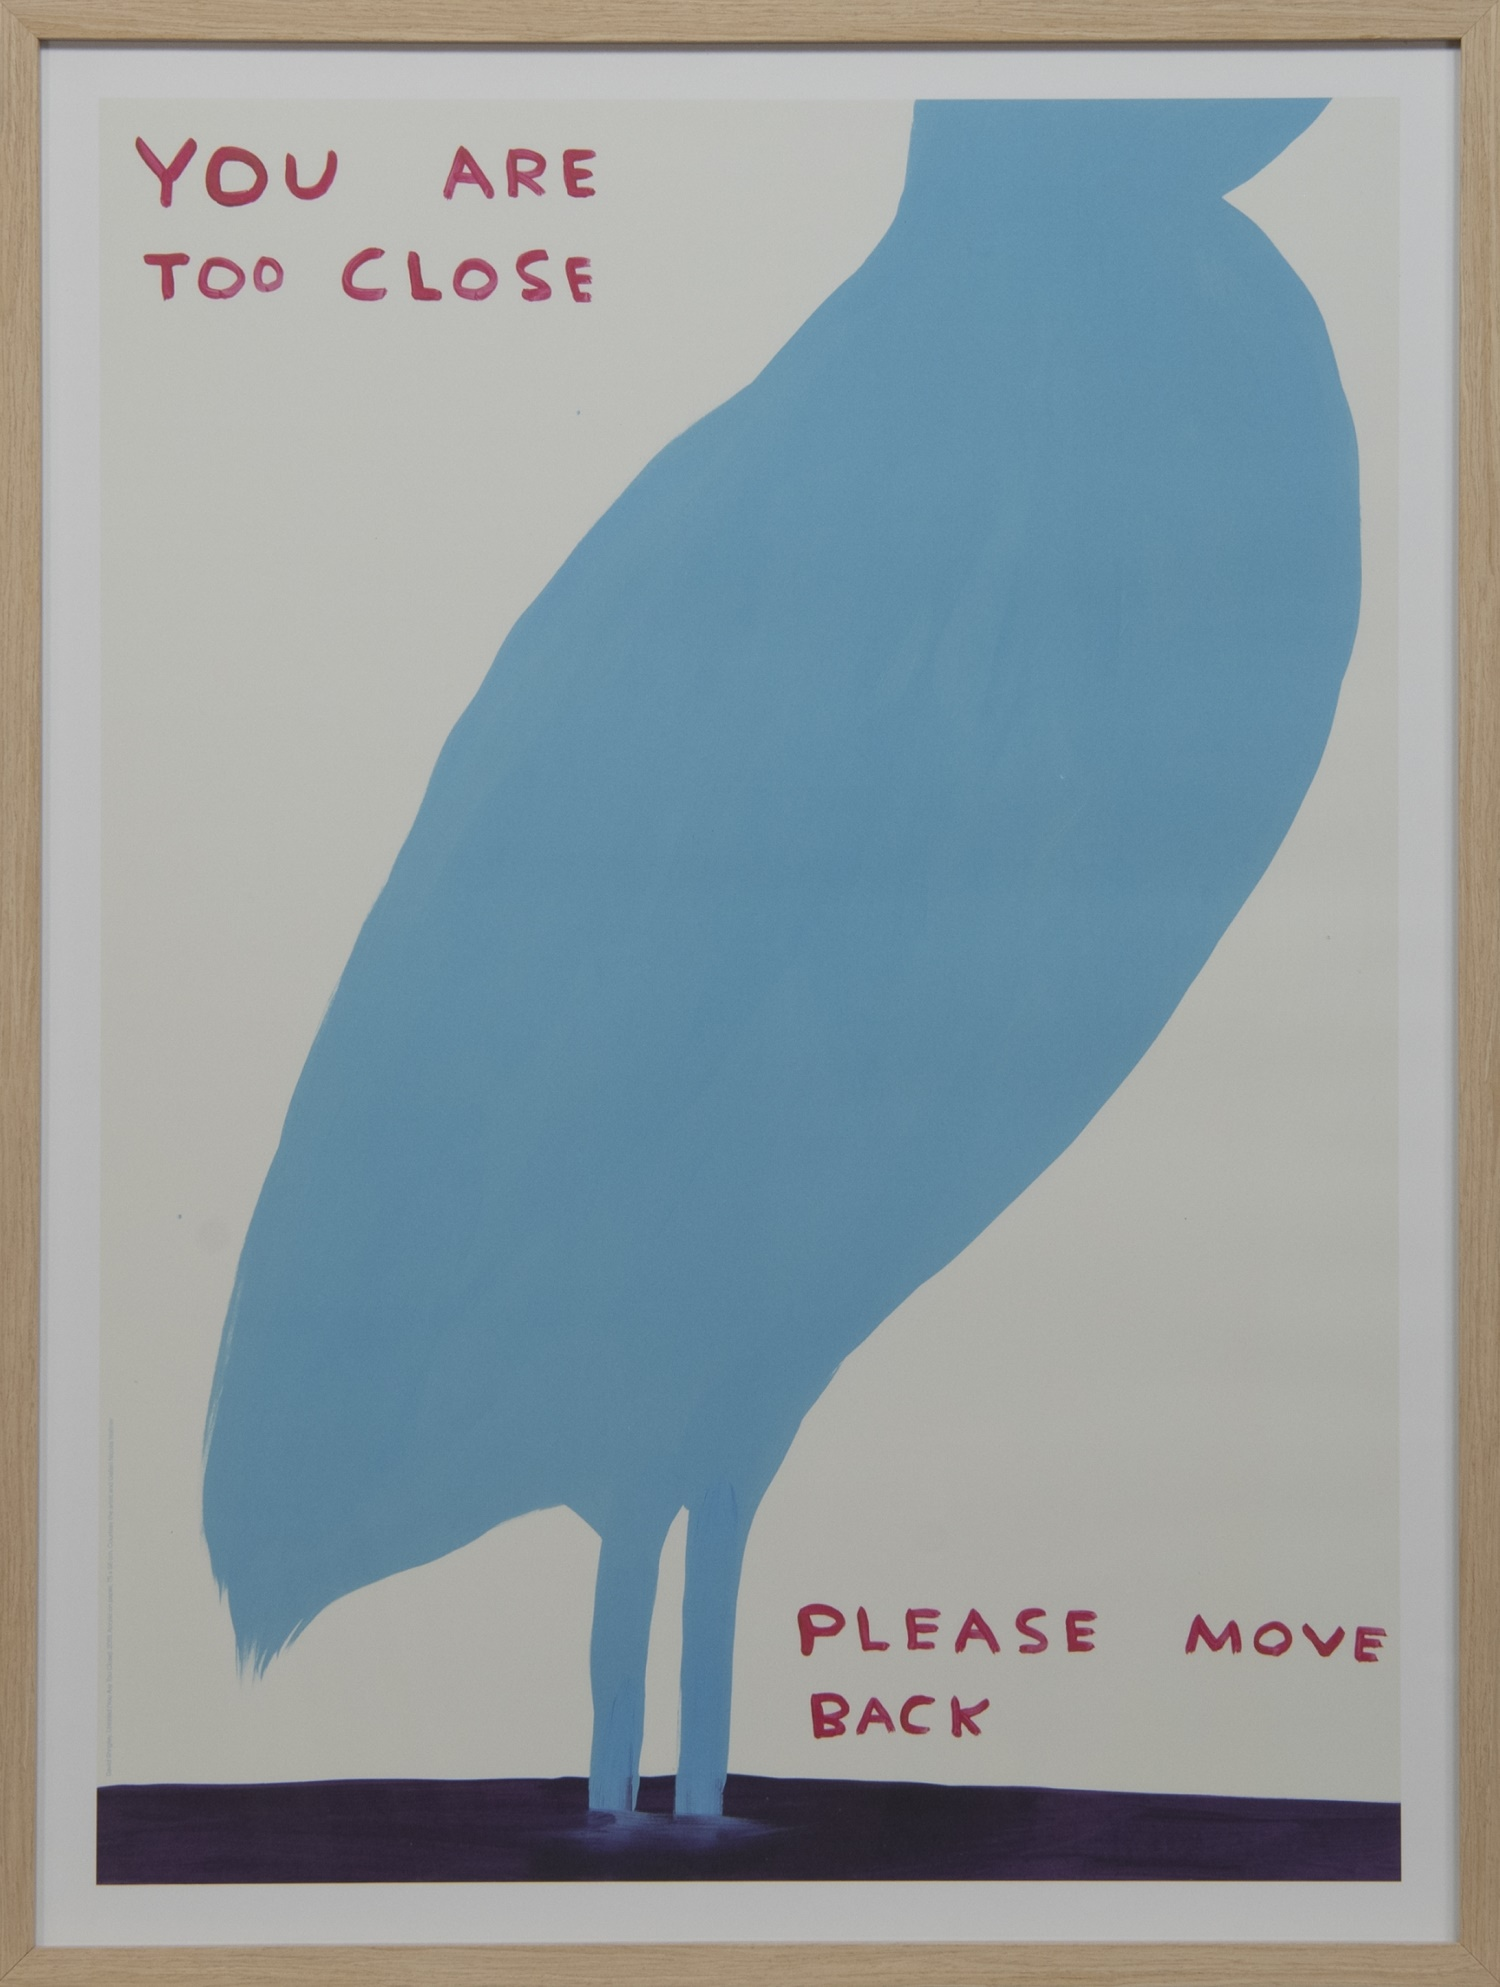 YOU ARE TOO CLOSE, A LITHOGRAPH BY DAVID SHRIGLEY